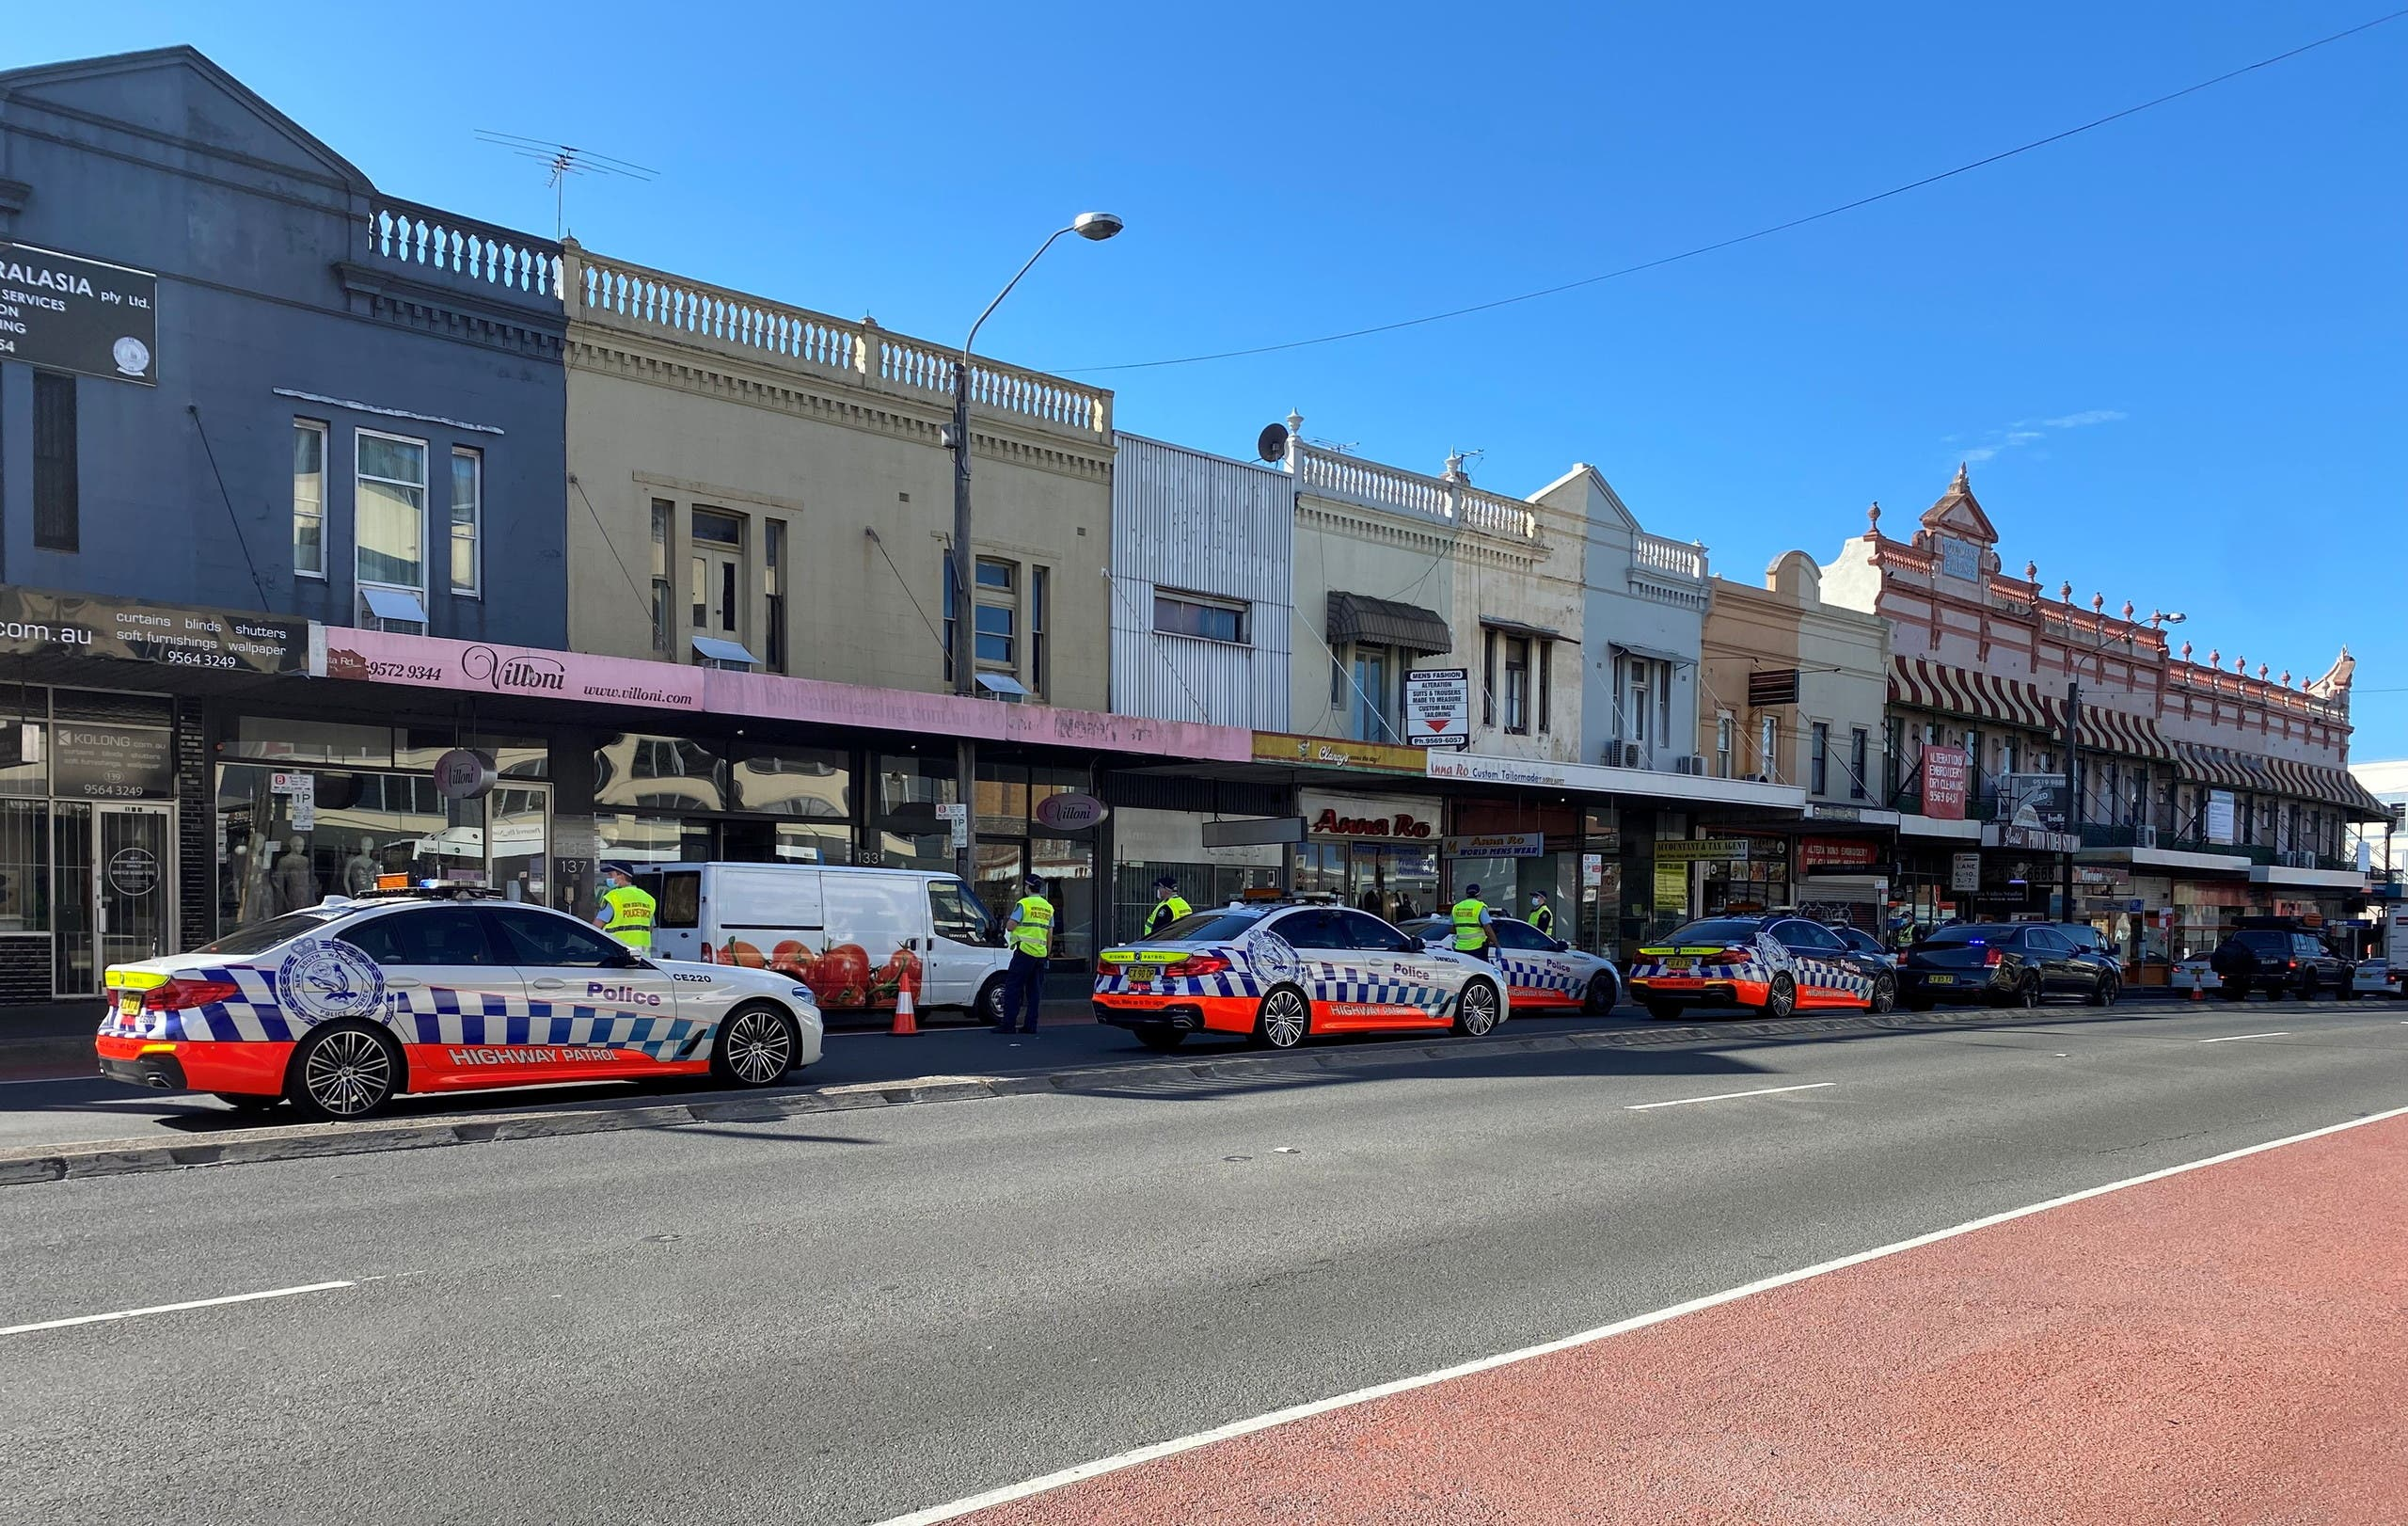 Police check the cars heading into the city while conducting a law enforcement operation to prevent anti-lockdown protesters from gathering during a lockdown to curb the spread of coronavirus disease (COVID-19) outbreak, in the Annandale suburb of Sydney, Australia, July 31, 2021. (Reuters)